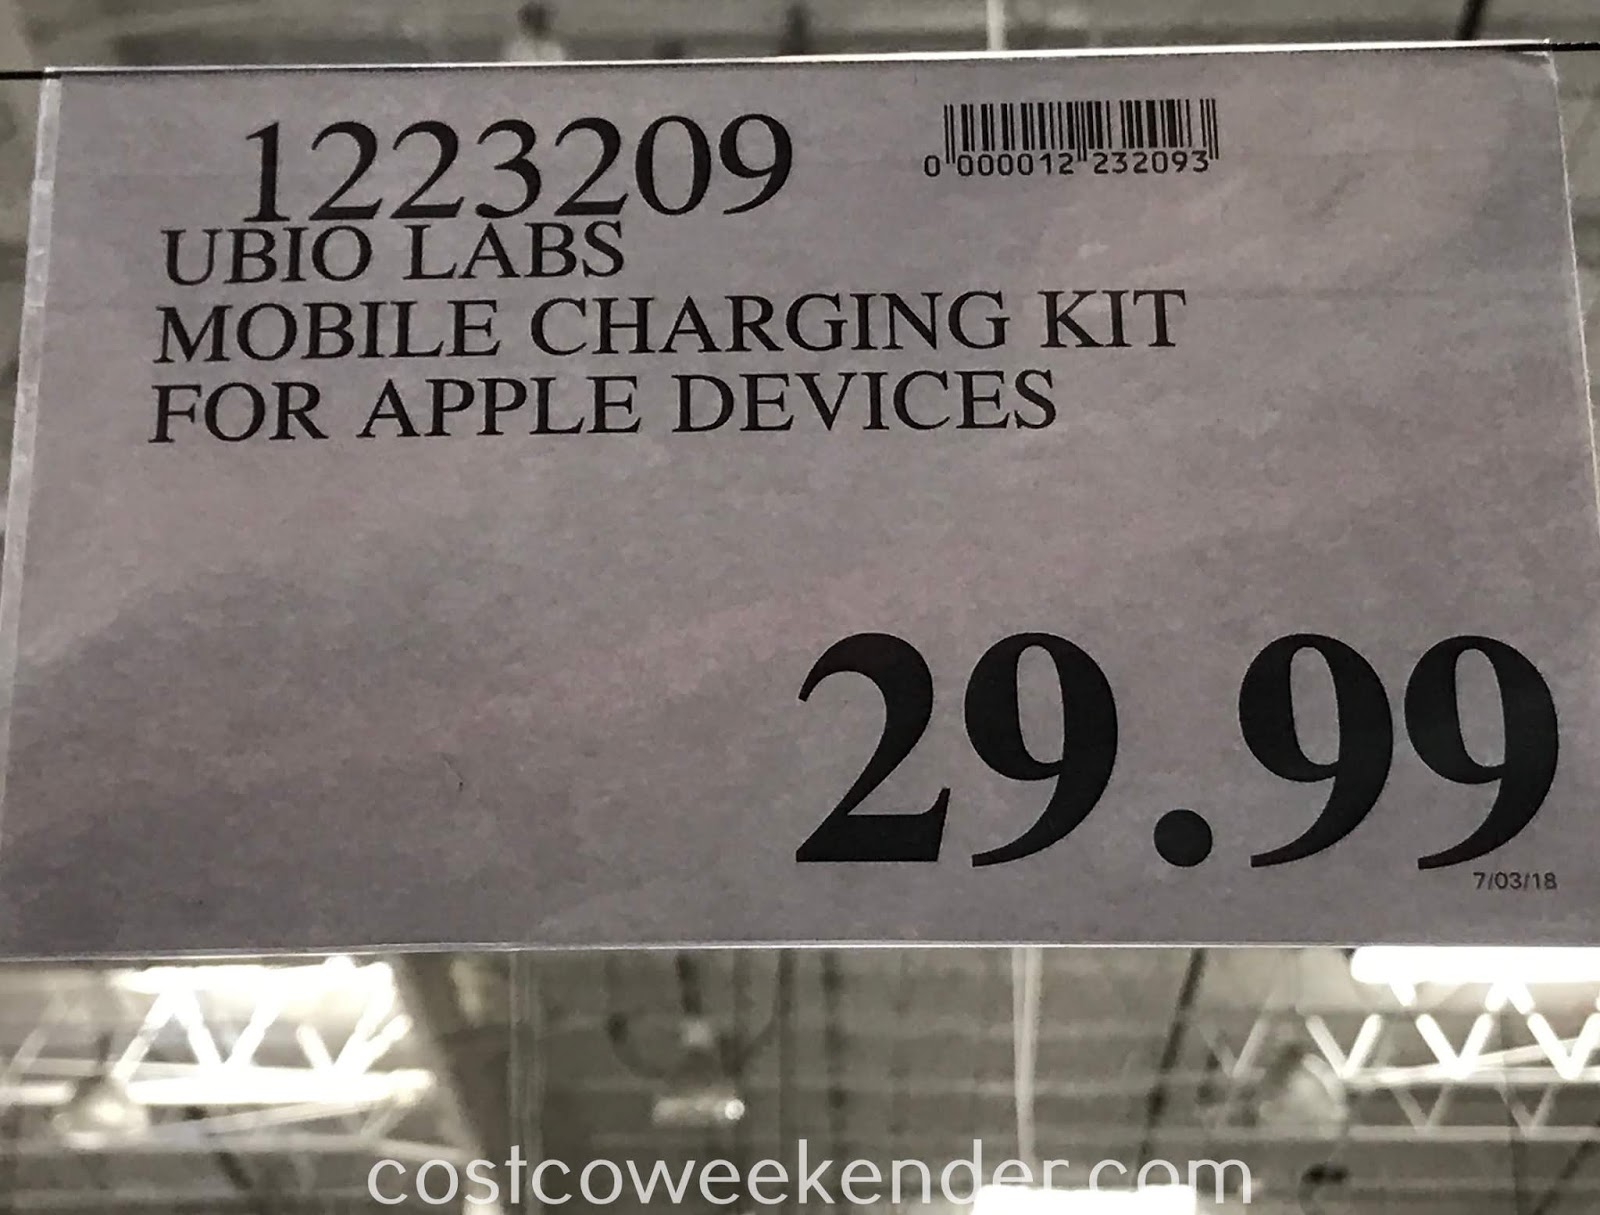 Deal for the Ubio Labs Mobile Charging Kit with Lightning Cables at Costco